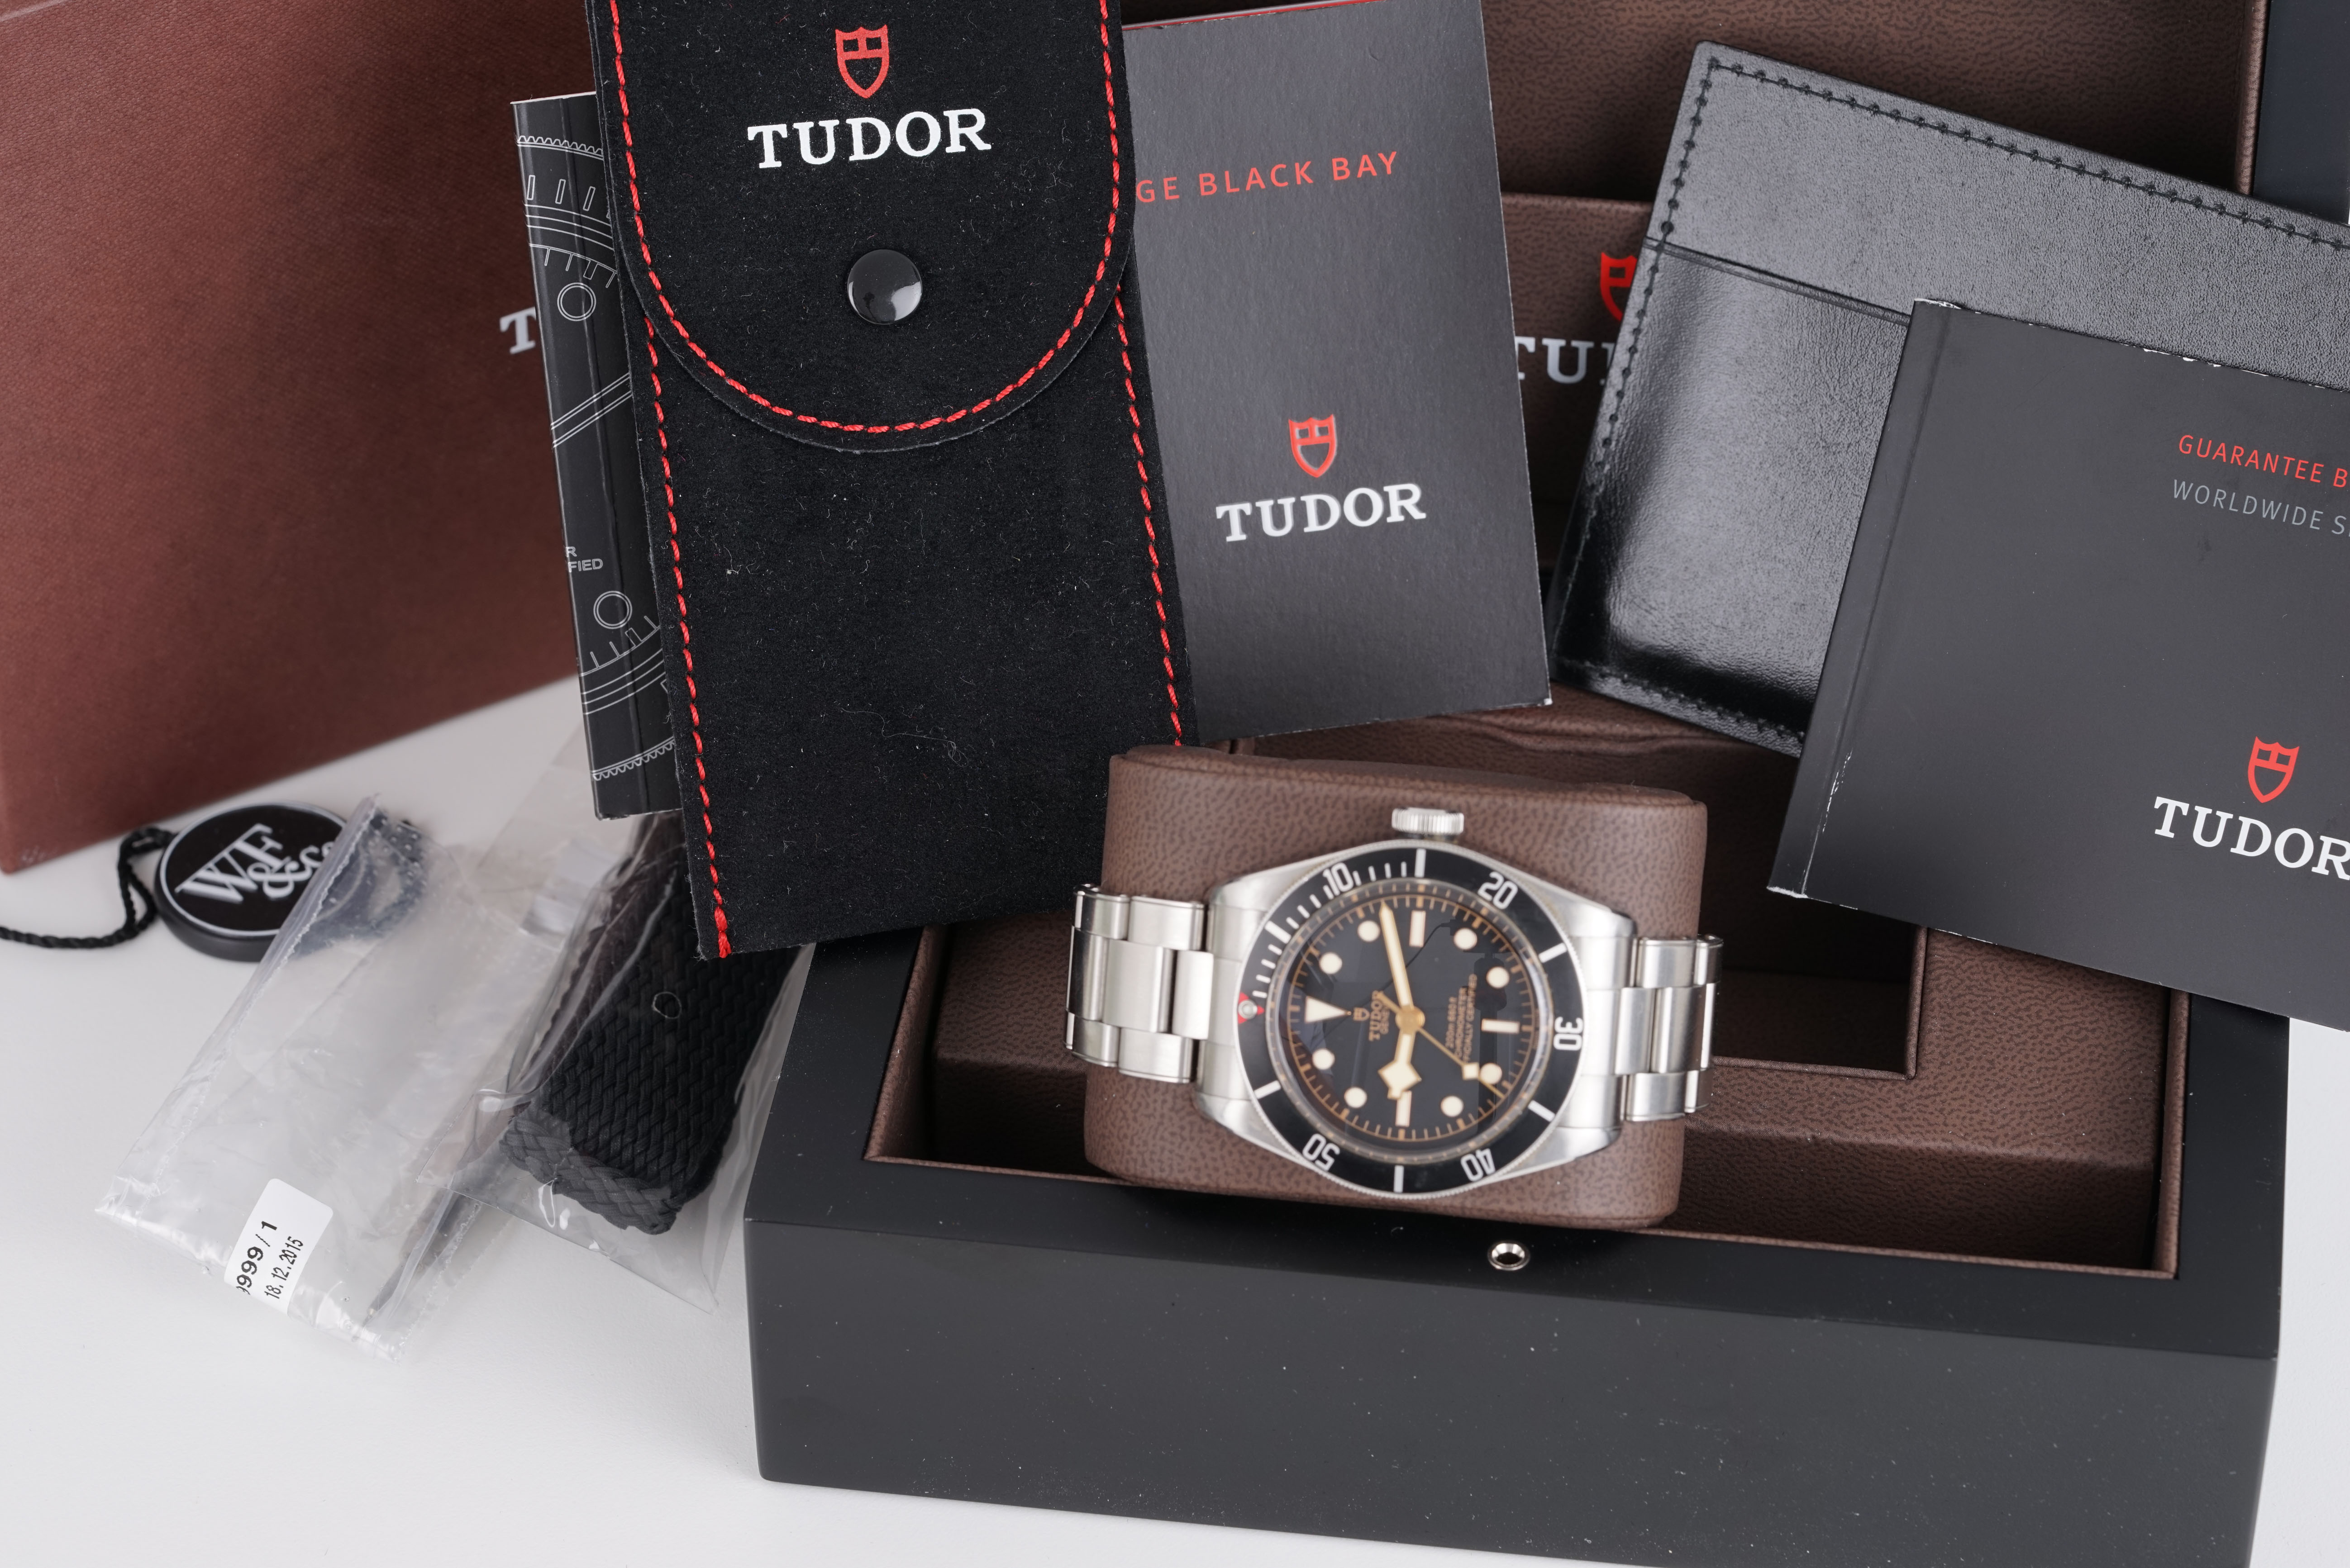 GENTLEMENS TUDOR HERITAGE BLACK BAY WRISTWATCH W/ BOX BOOKLETS & PARTS, circular black dial with dot - Image 2 of 4